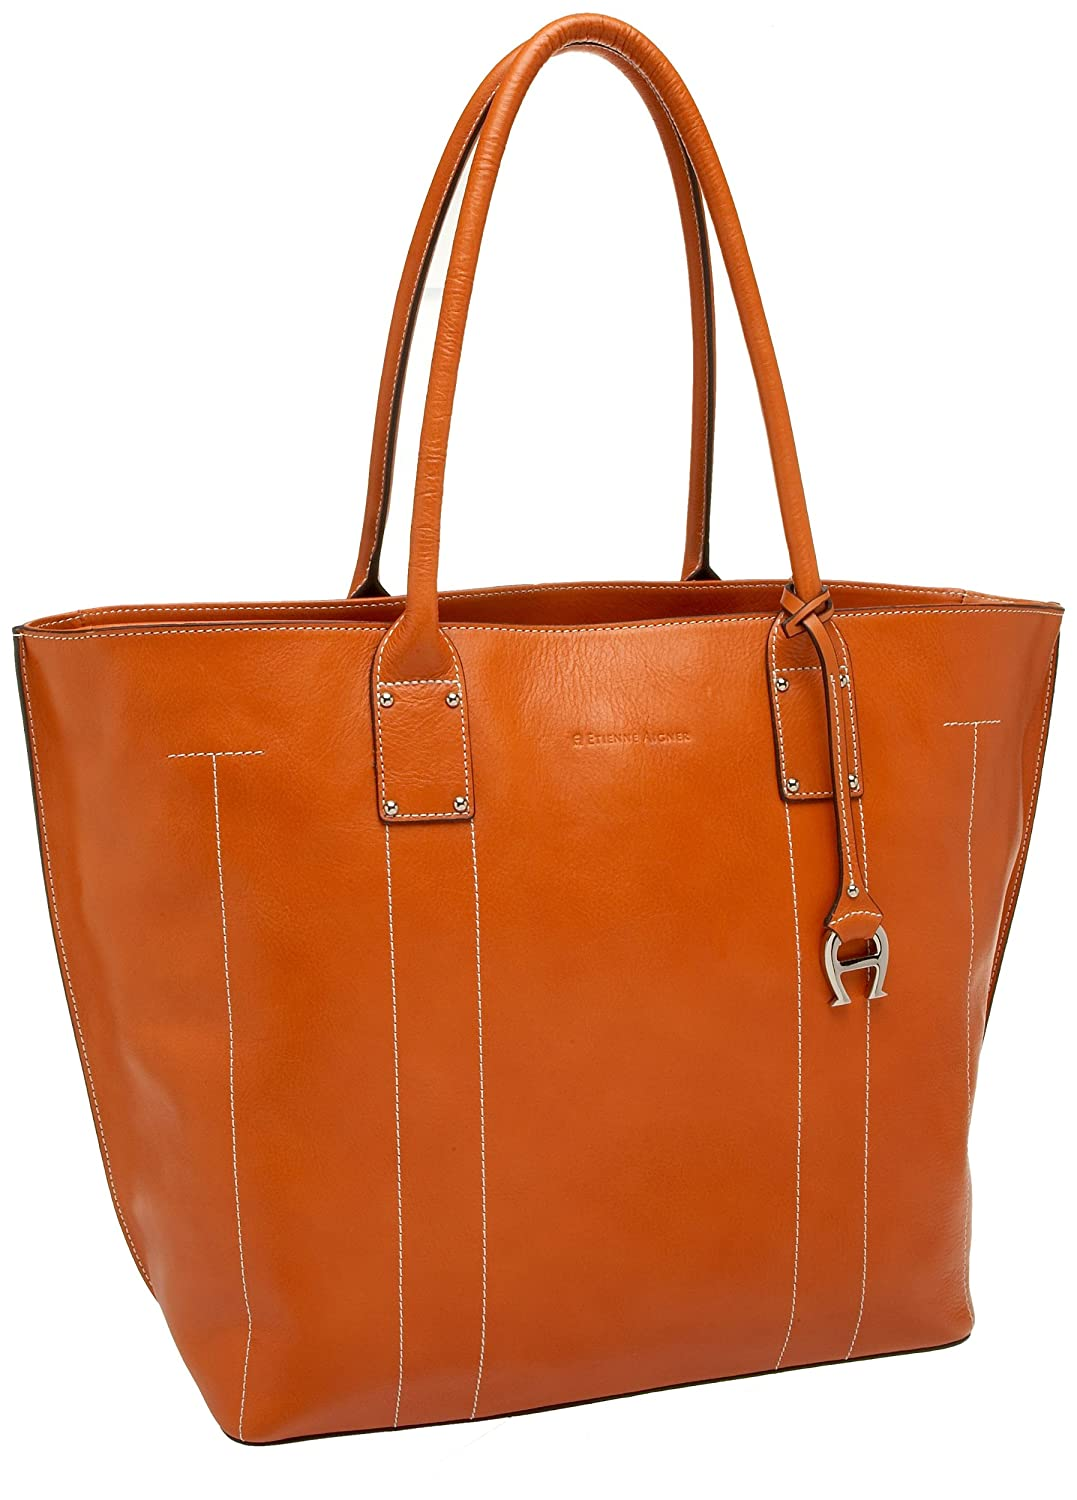 Etienne Aigner Modern Tote - Free Overnight Shipping &amp; Return Shipping: Endless.com from endless.com